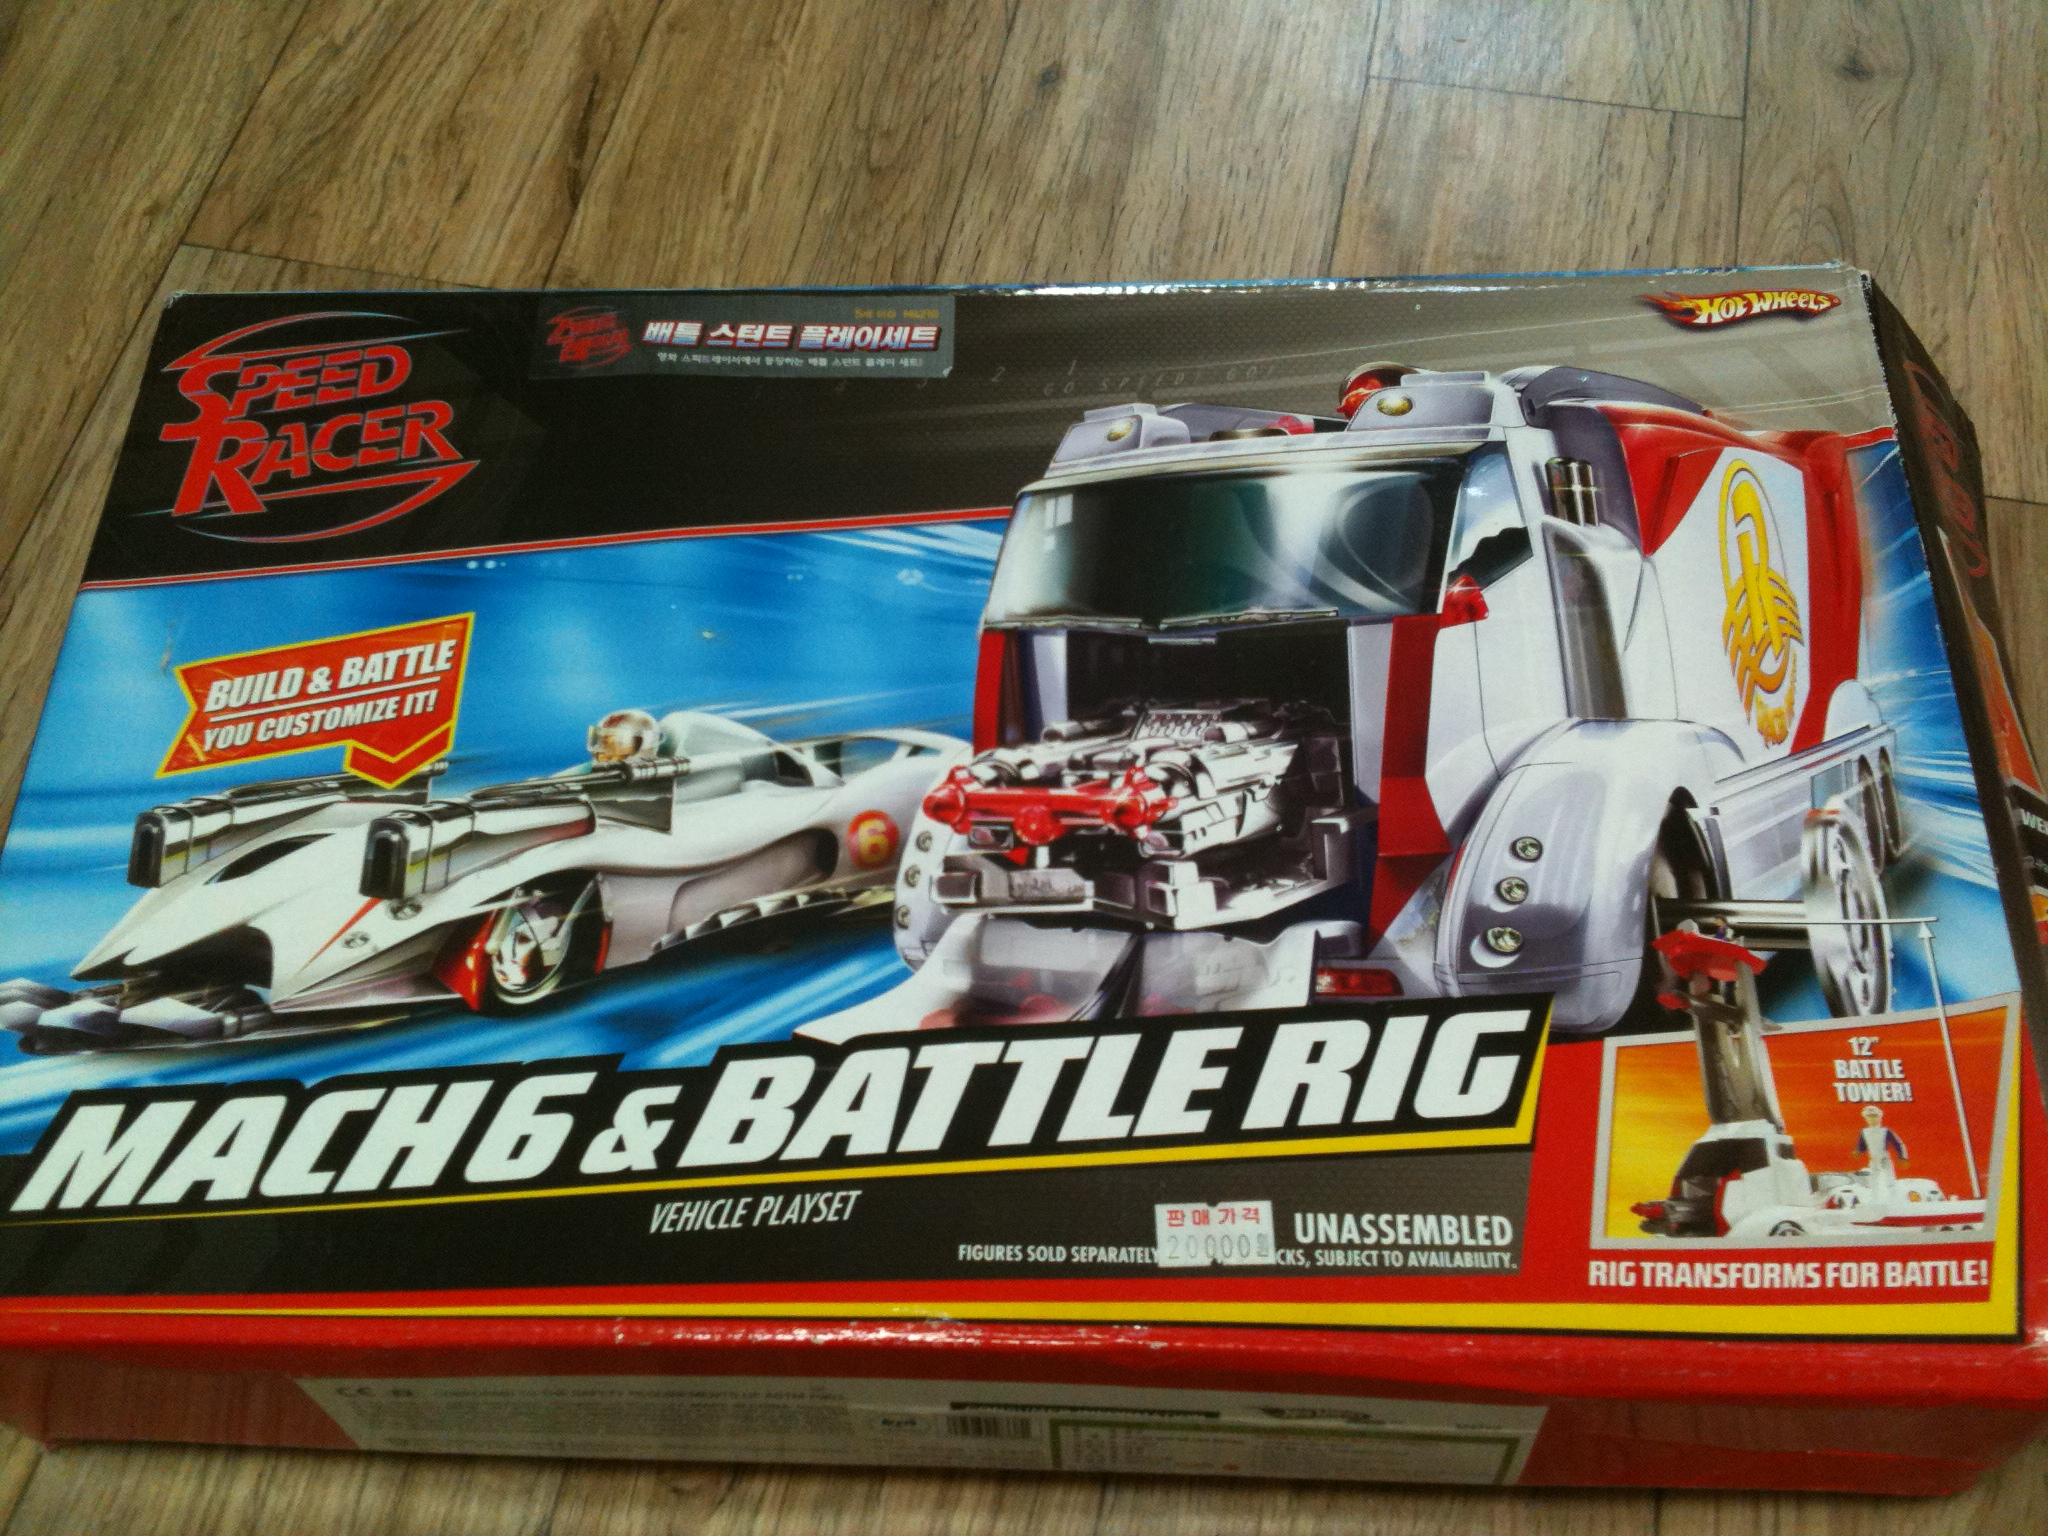 Speed Racer Mach6 & Battle Rig Vehicle Pl..